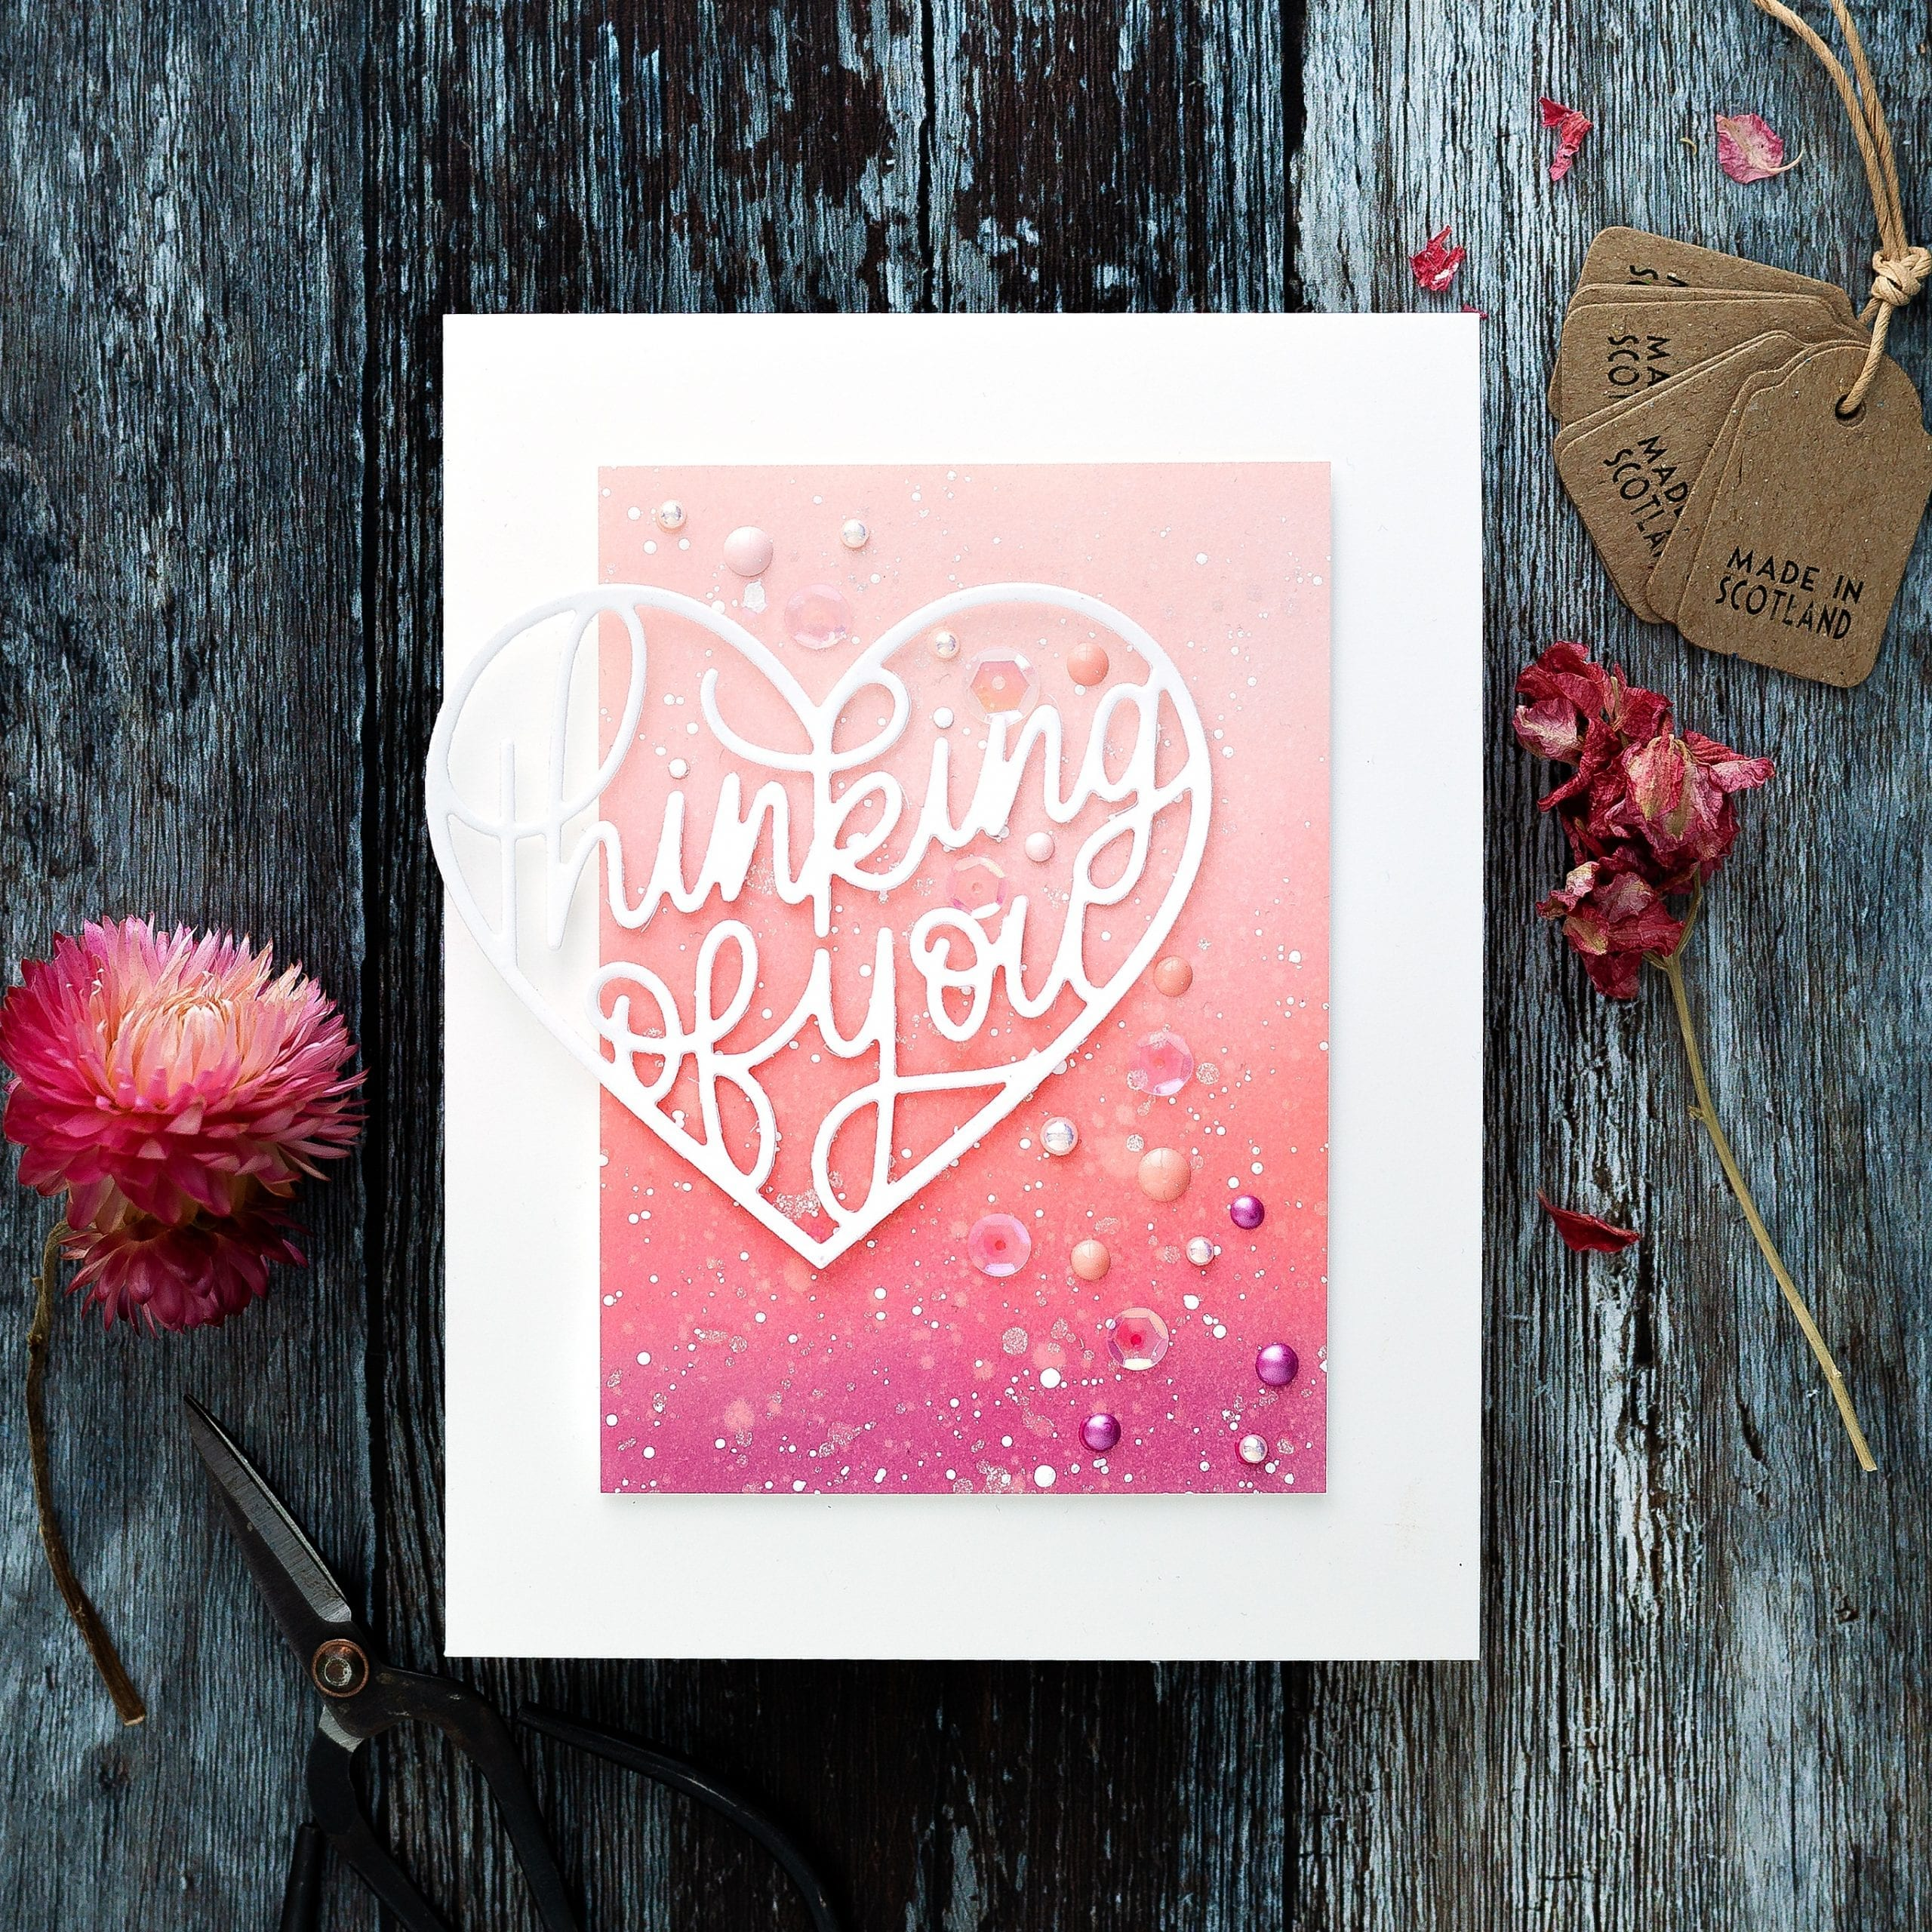 Tutorial, how to create movement in a handmade card design by Debby Hughes using supplies from Simon Says Stamp